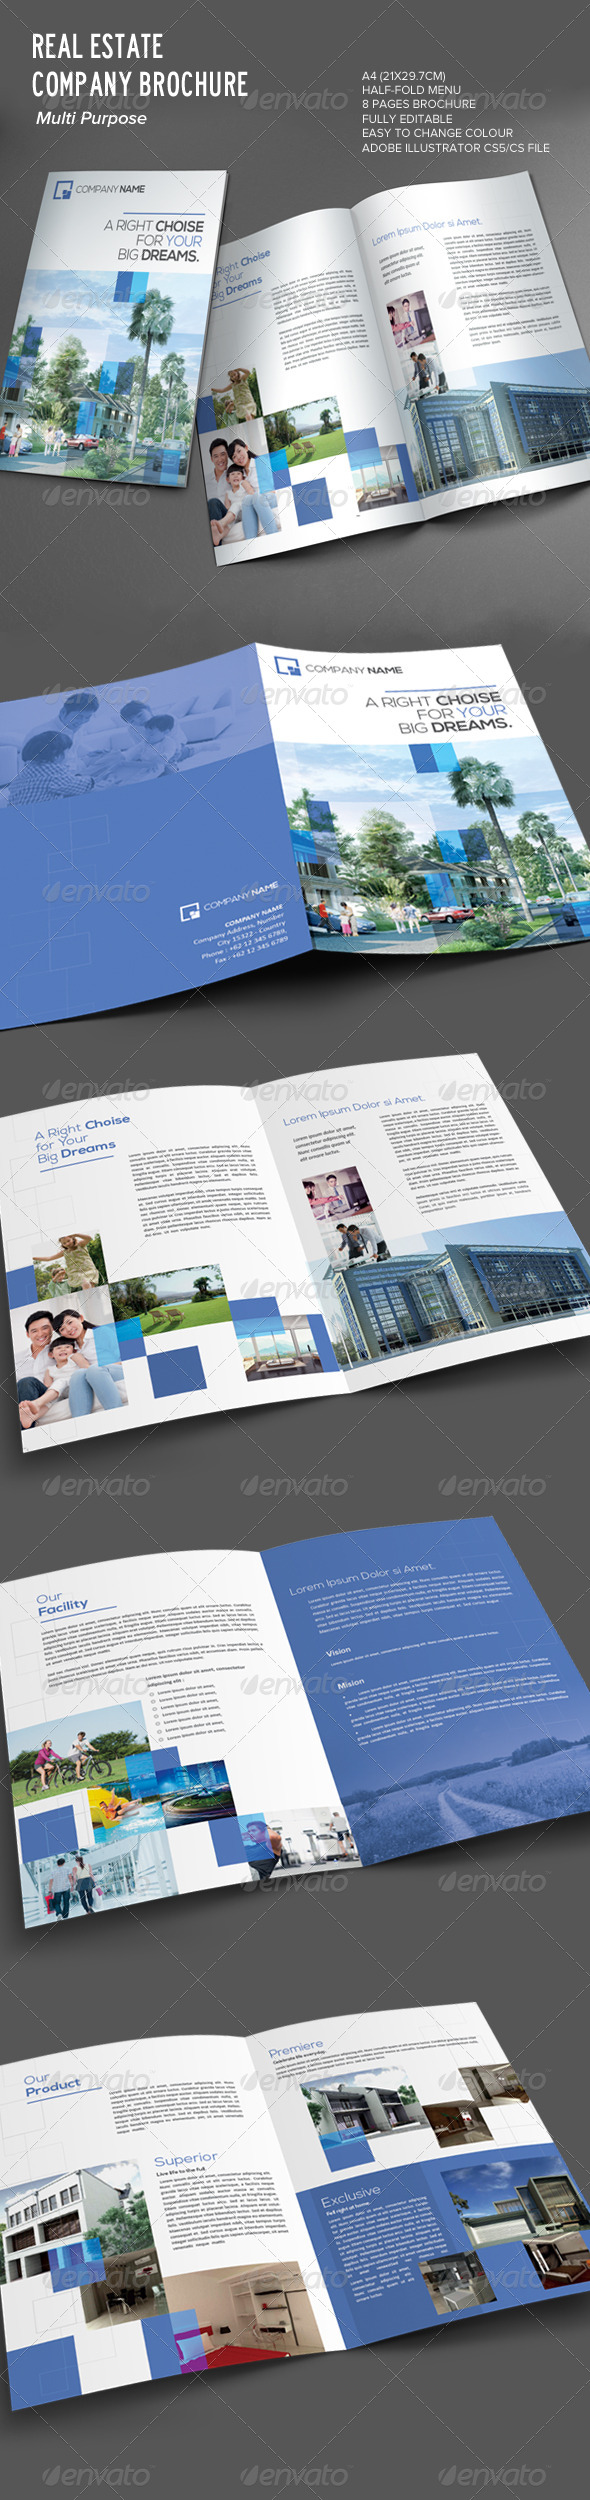 GraphicRiver Real Estate Brochure 7571770